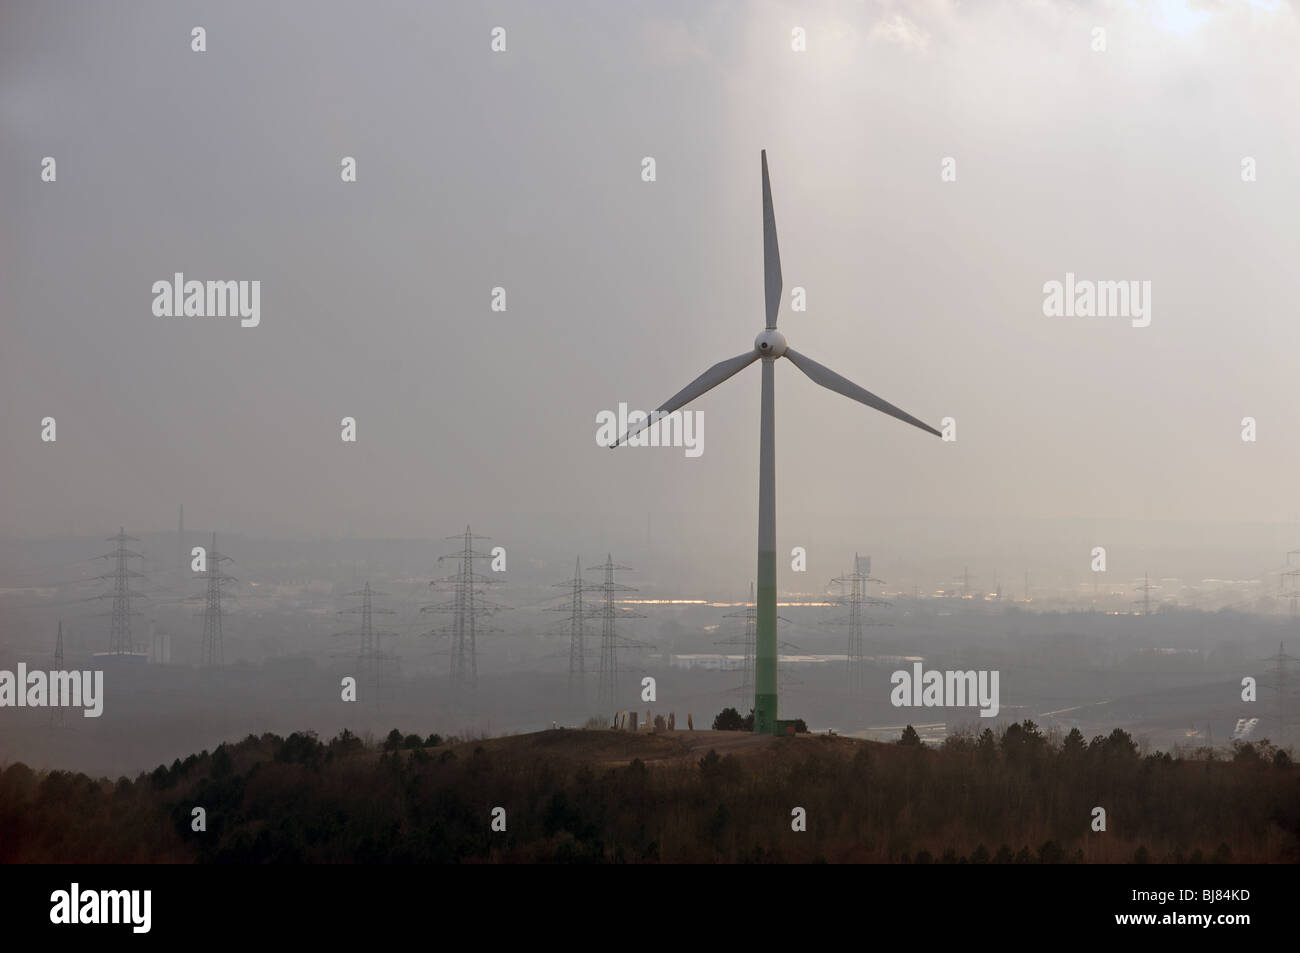 Wind turbine, Germany. - Stock Image